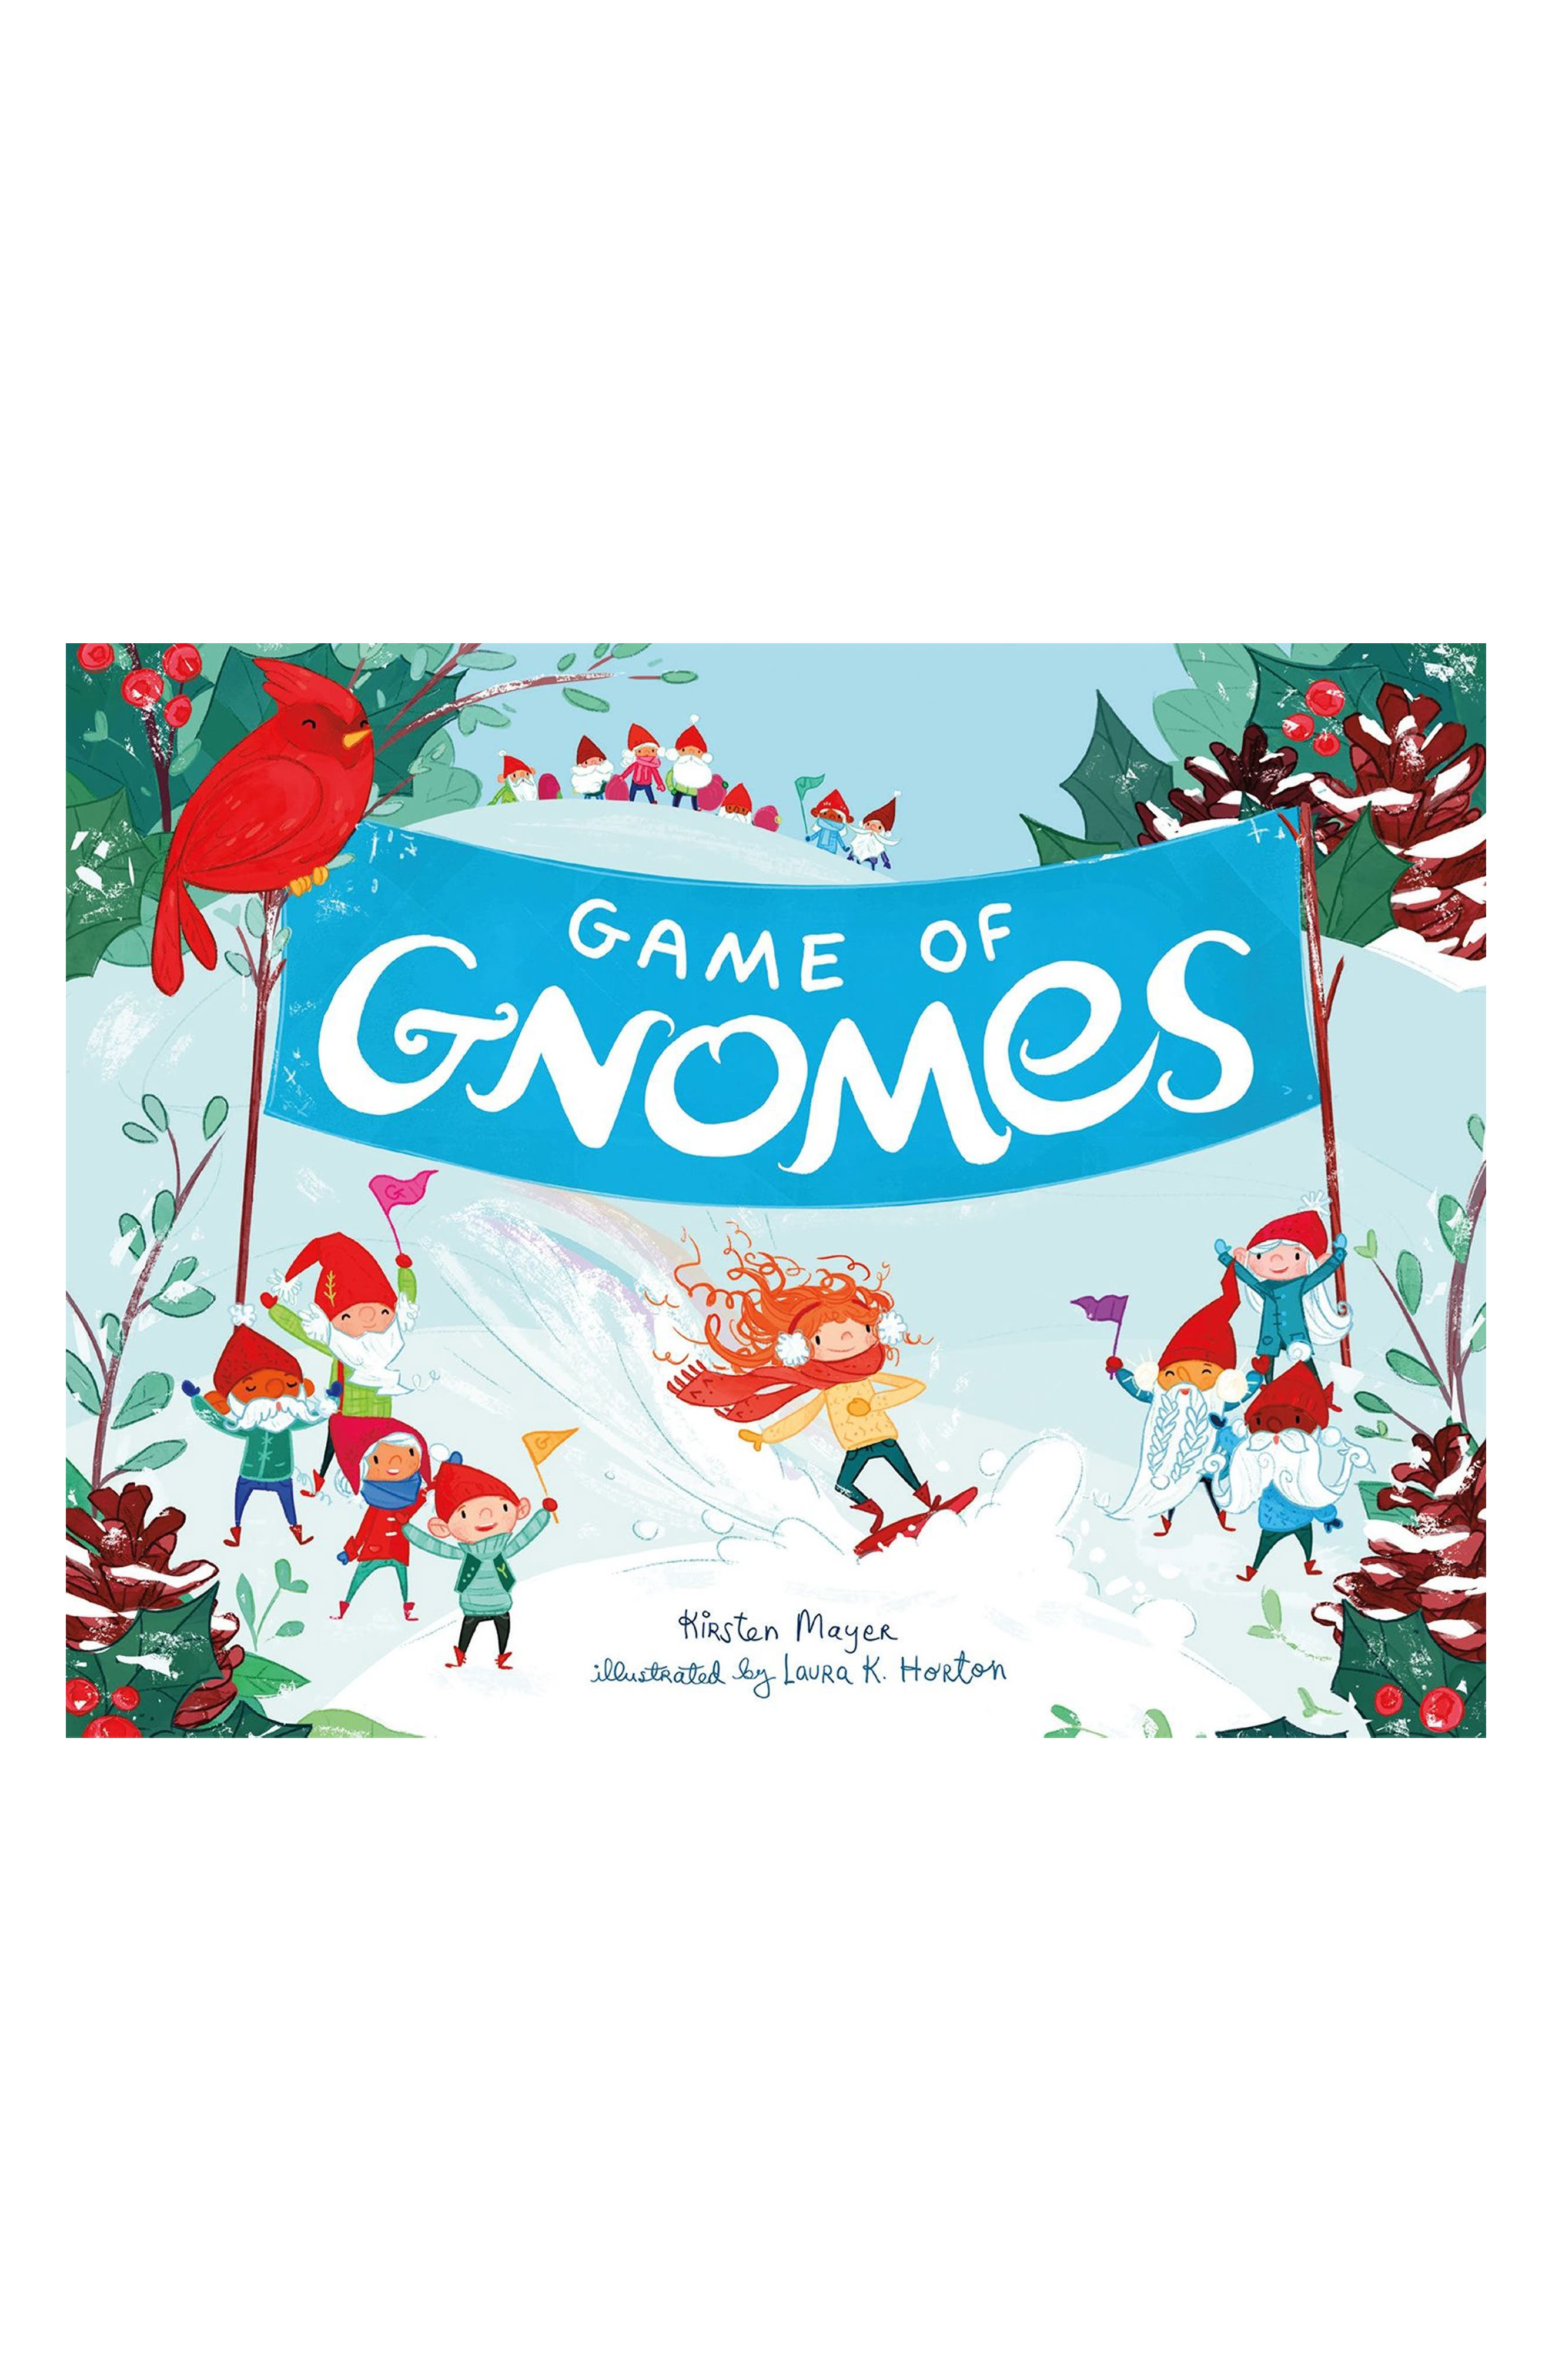 Alternate Image 1 Selected - 'Game of Gnomes' Book